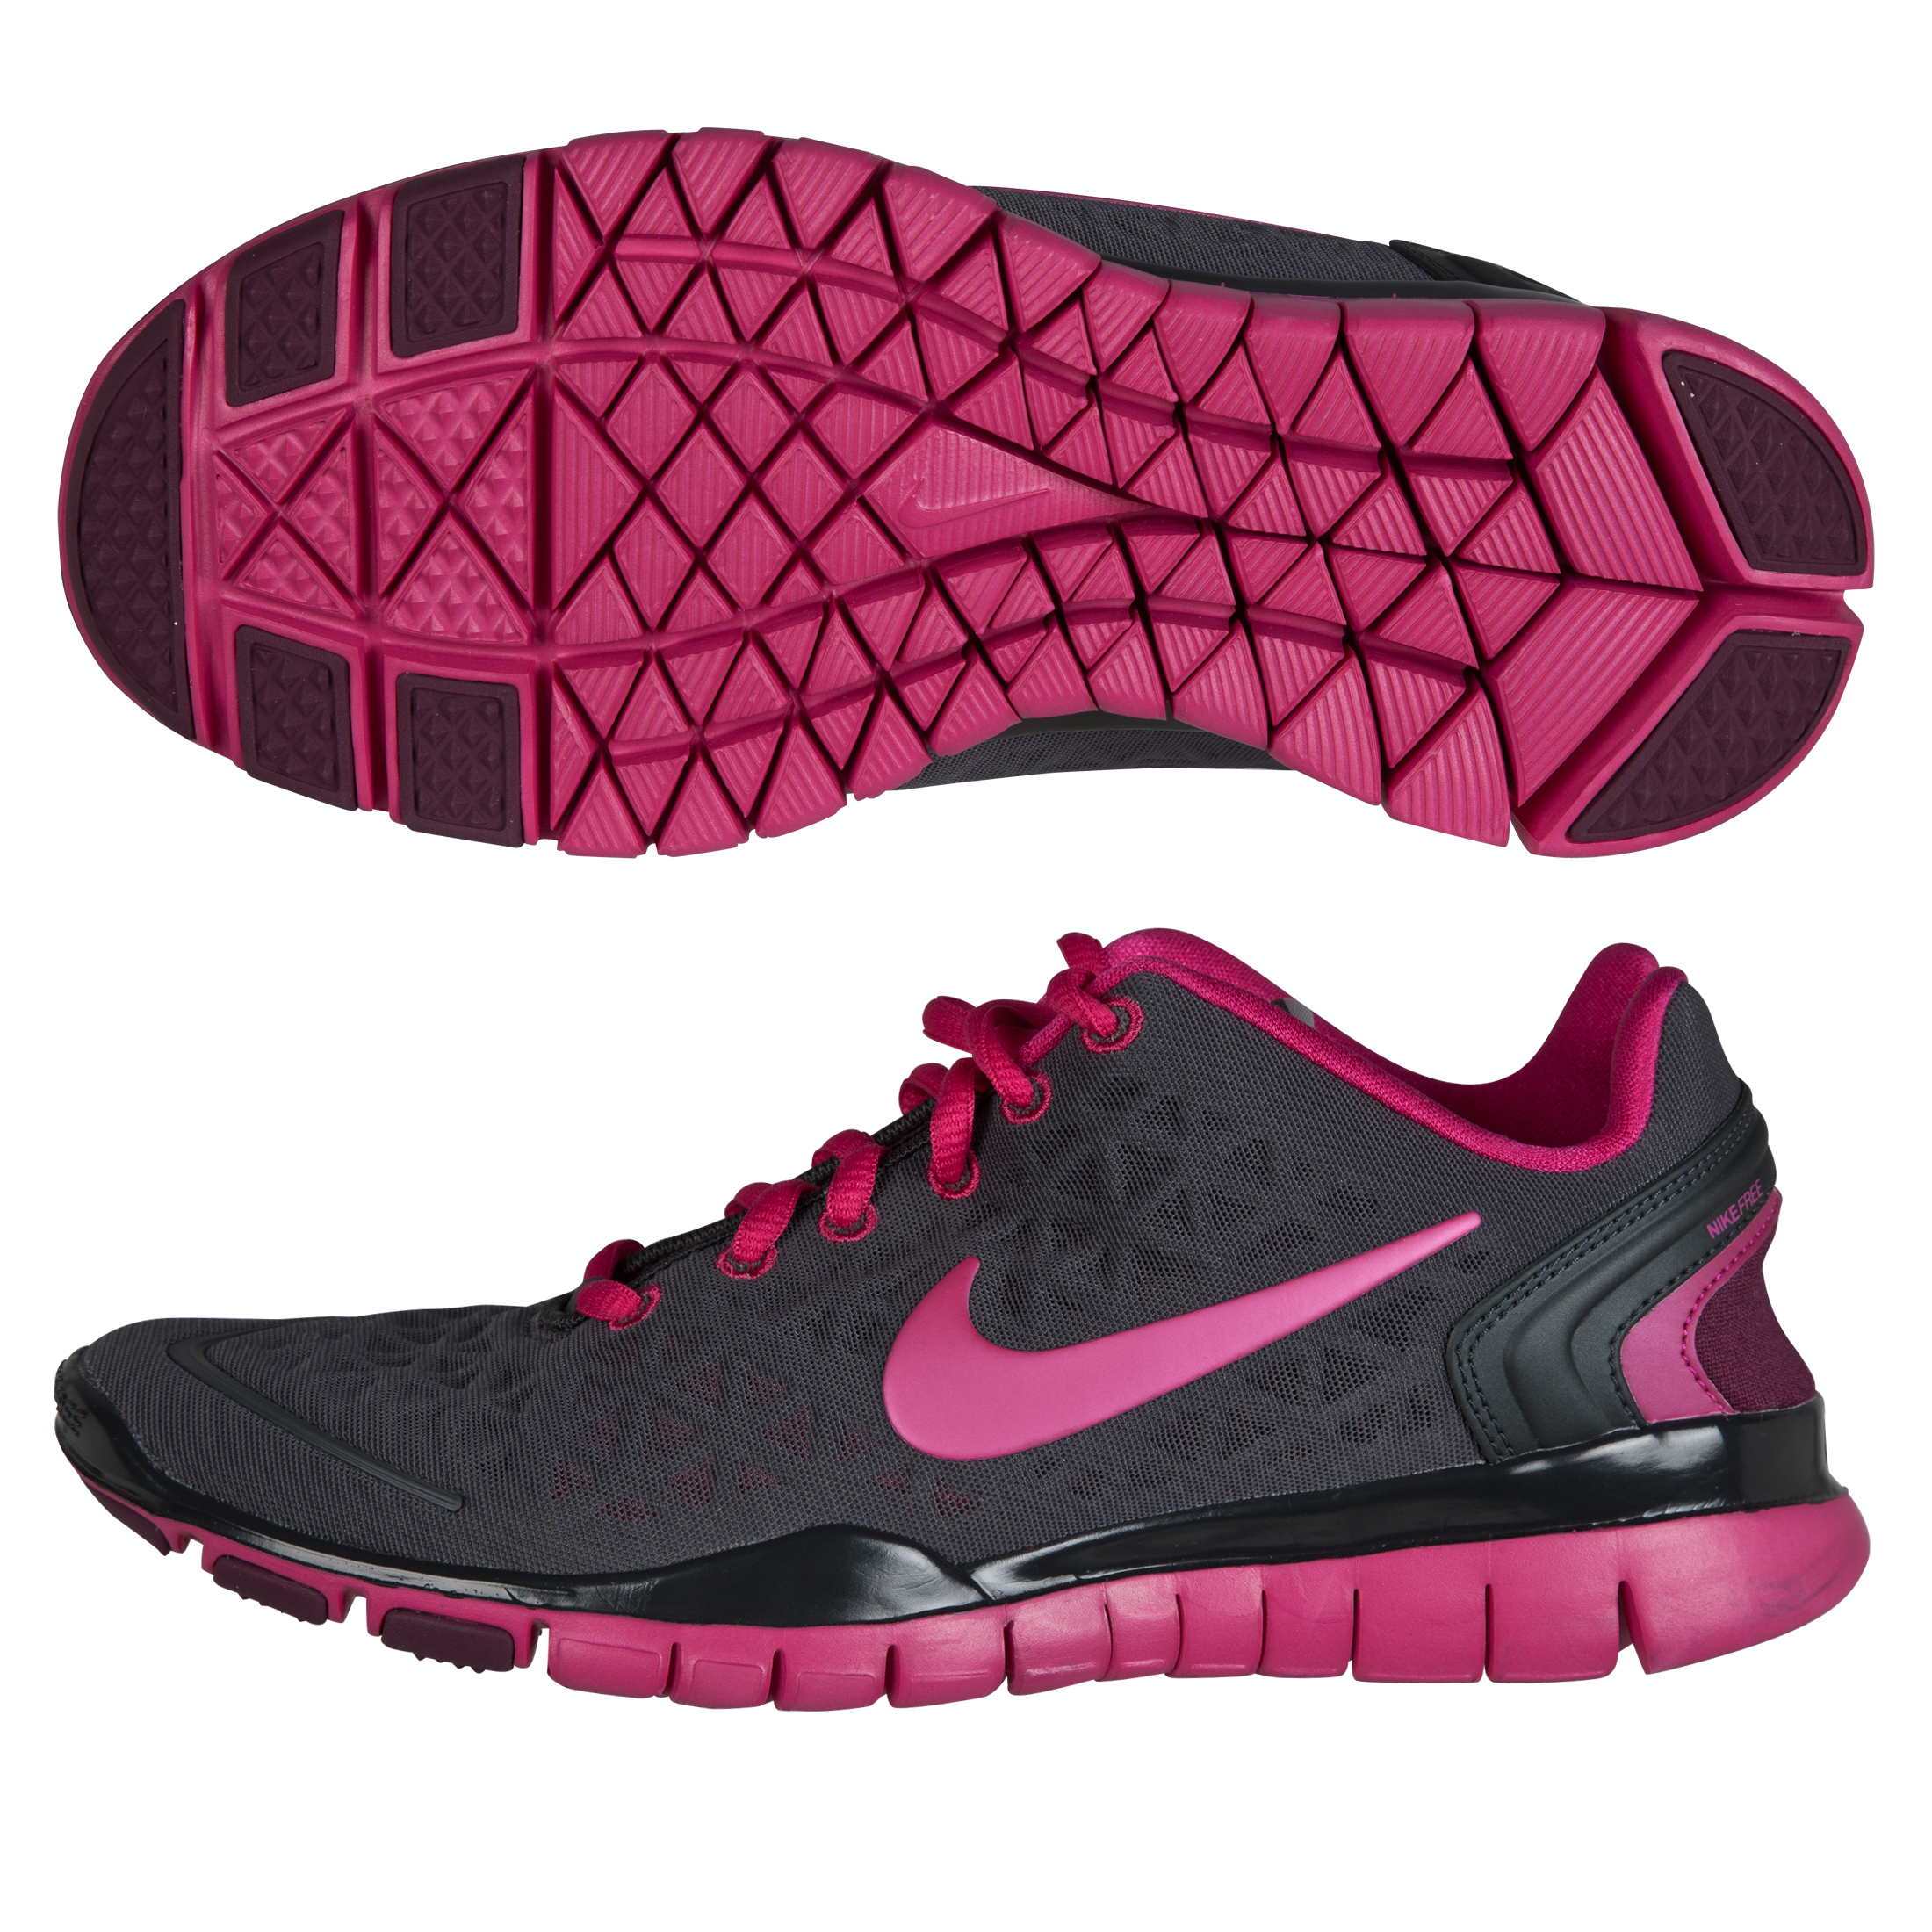 Nike Womens Nike Free Trainer Fit 2 - Anthracite/Fireberry-Bordeaux - Womens